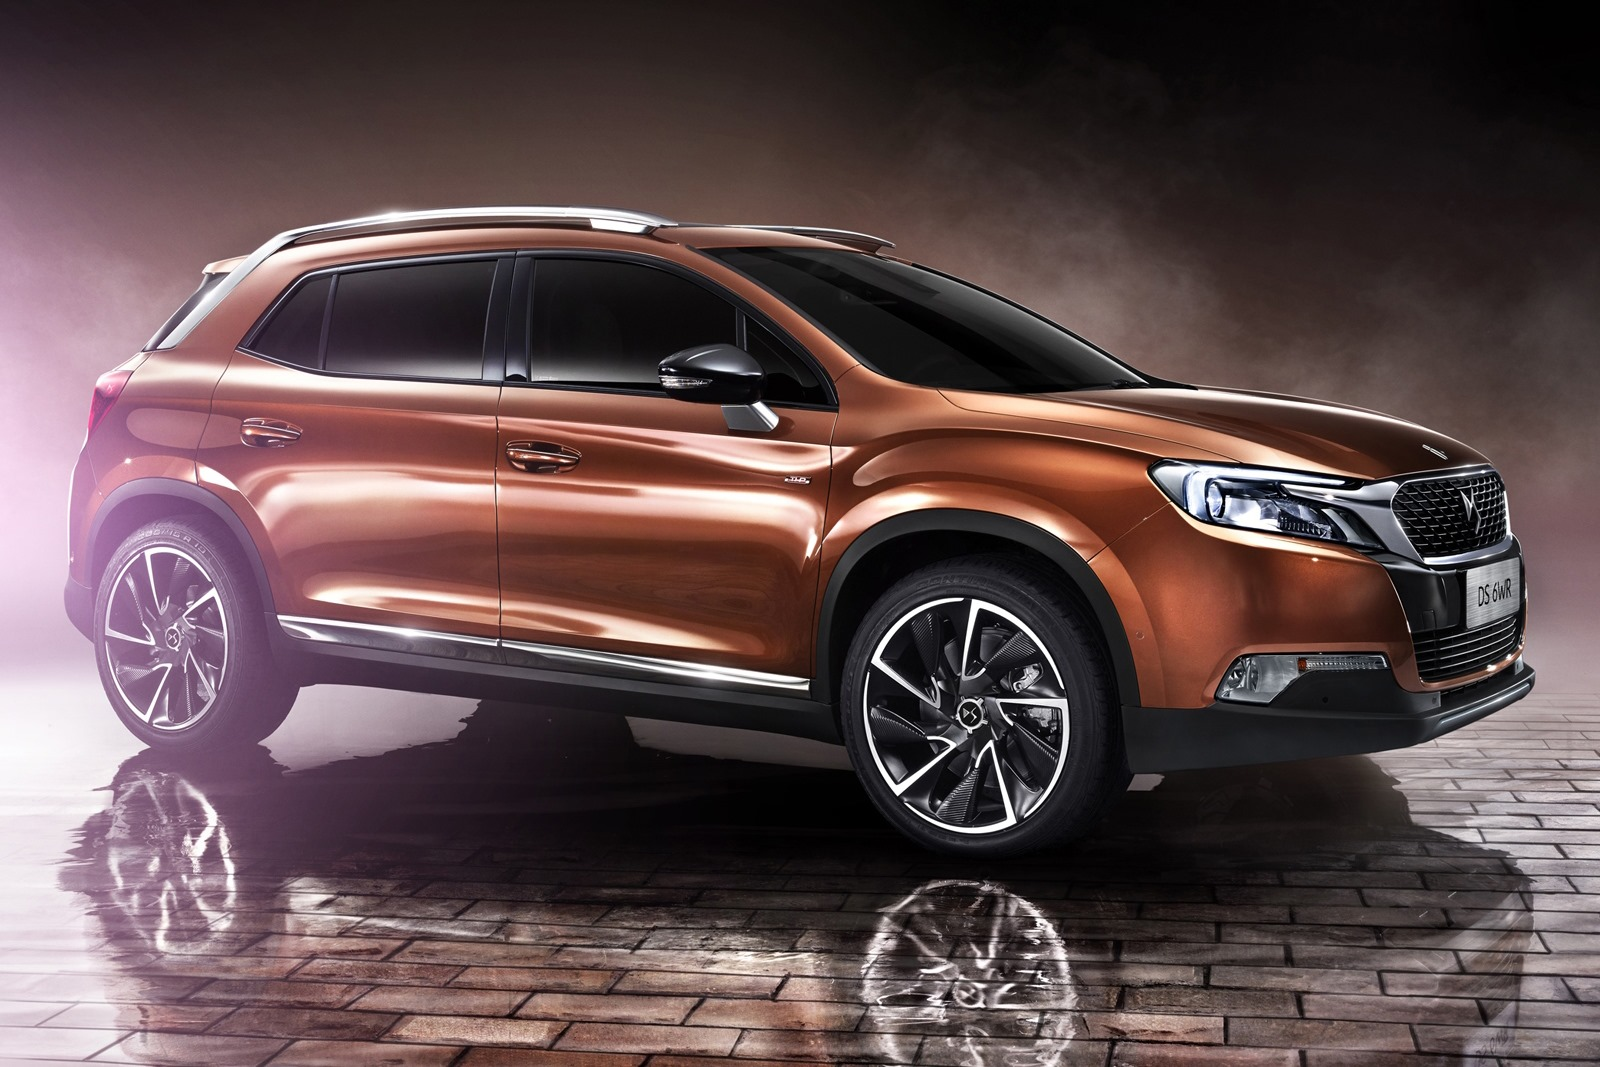 While Citroen And Peugeot Might Not Enter The American Market Along With Ds Brand Latter Will Have To Bring All Of Best Bits From Entire